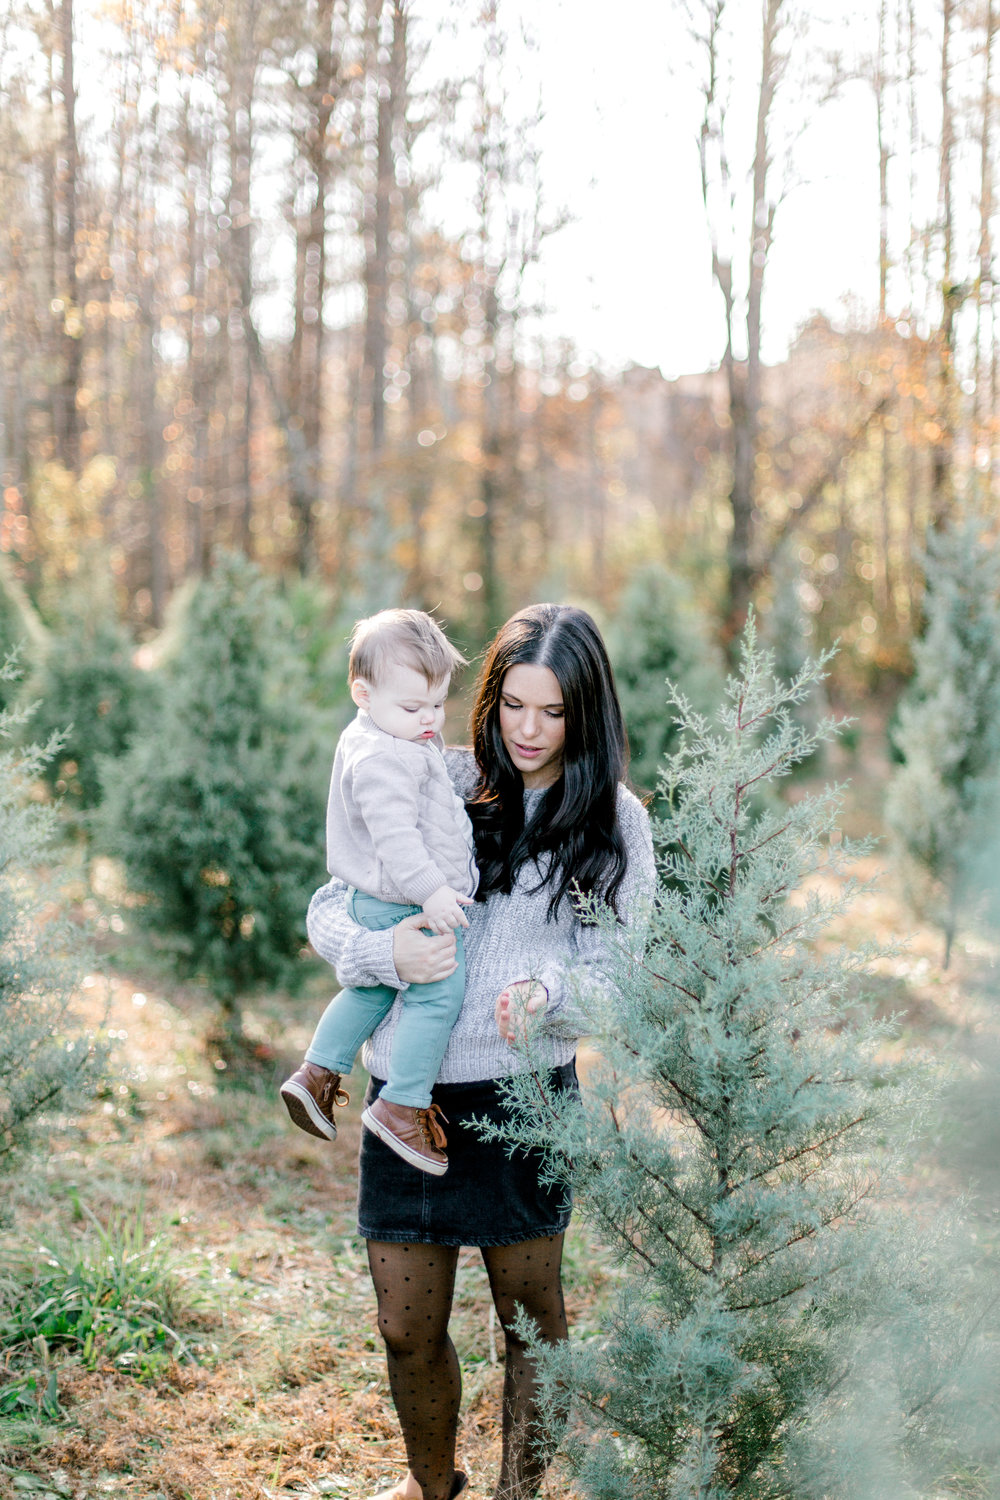 Jessica Sgubin Photography Atlanta Photographer Atlanta Portrait Photographer Atlanta engagement photographer atlanta family photographer atlanta baby photograpehr-16.jpg